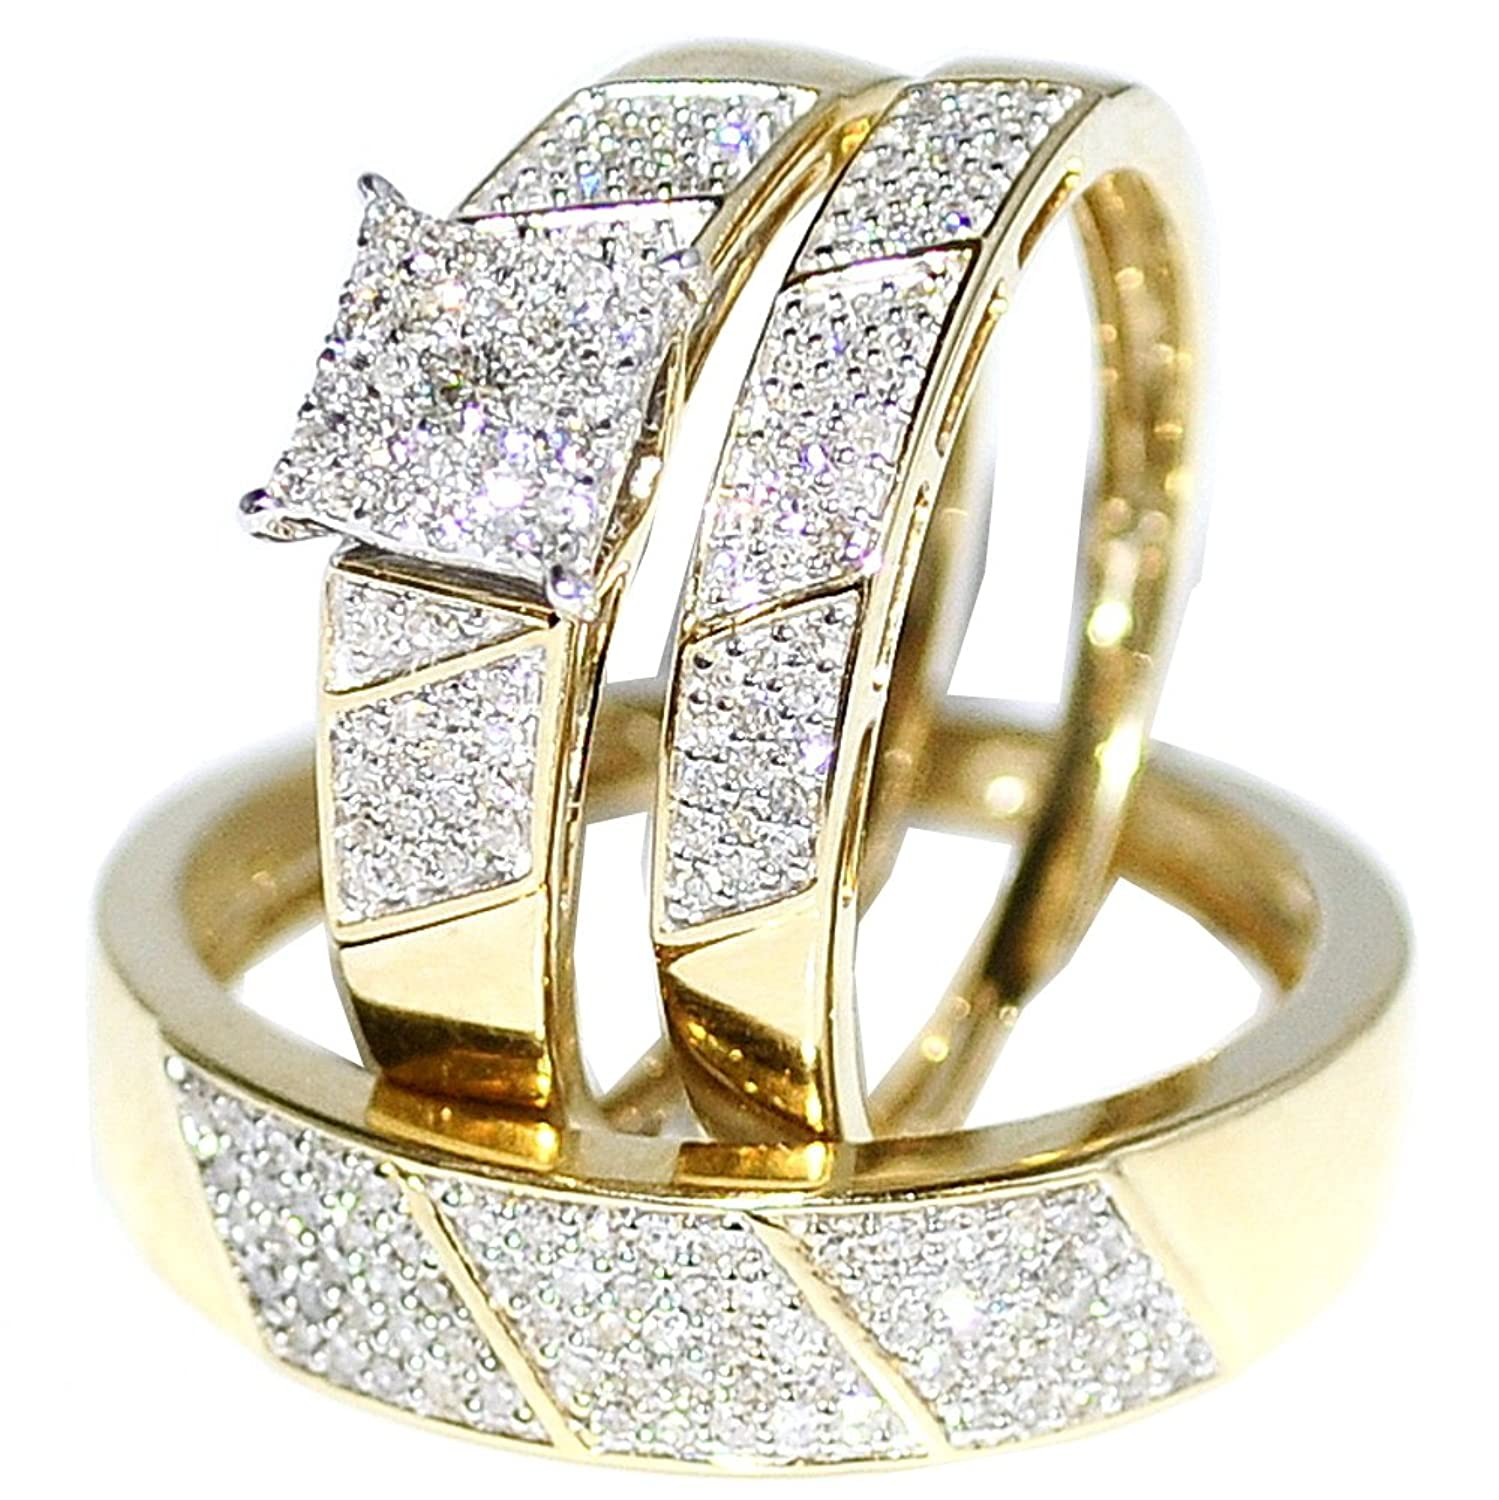 ring queenjewels natural real certified men buy solid wedding s ct rings gold untreated diamond p